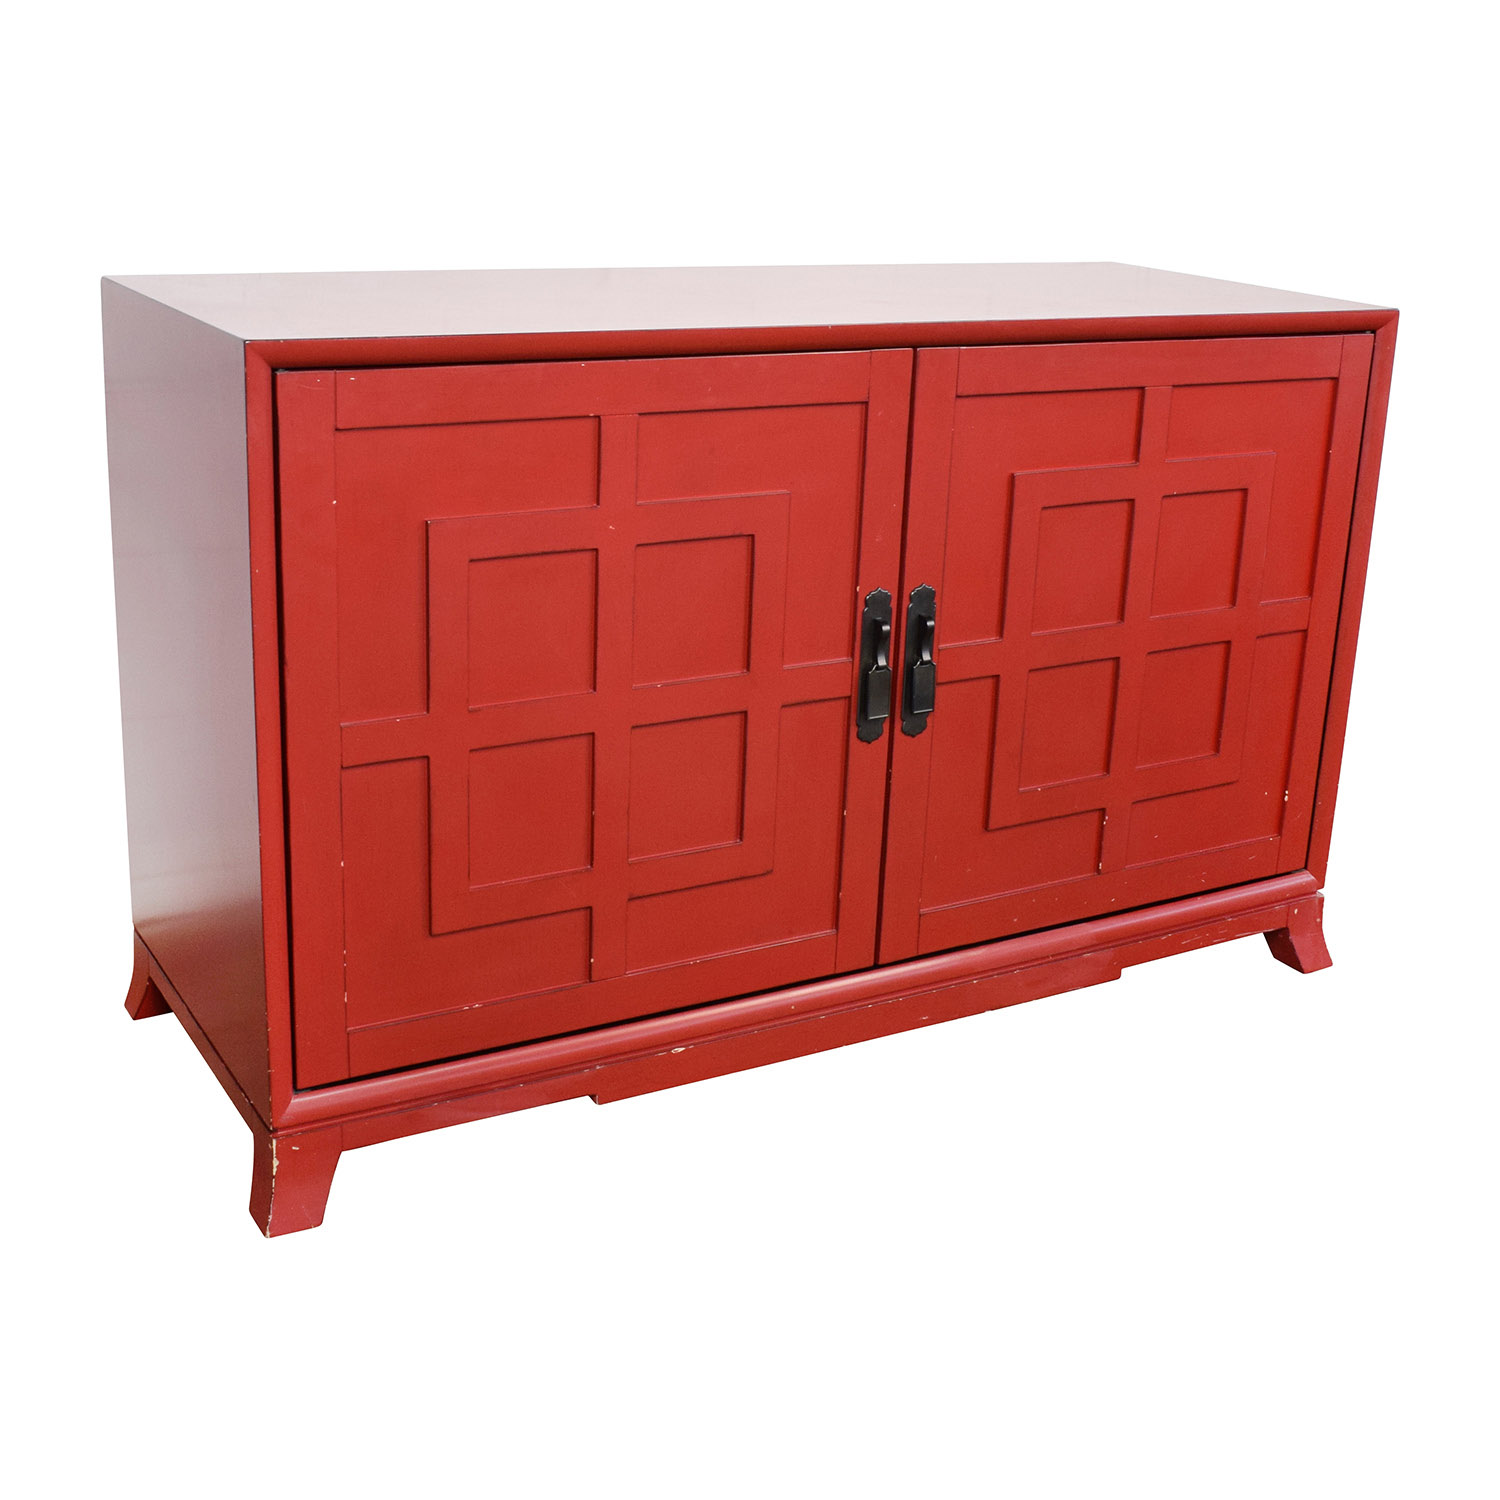 Crate and Barrel Crate & Barrel Red Media Storage Storage